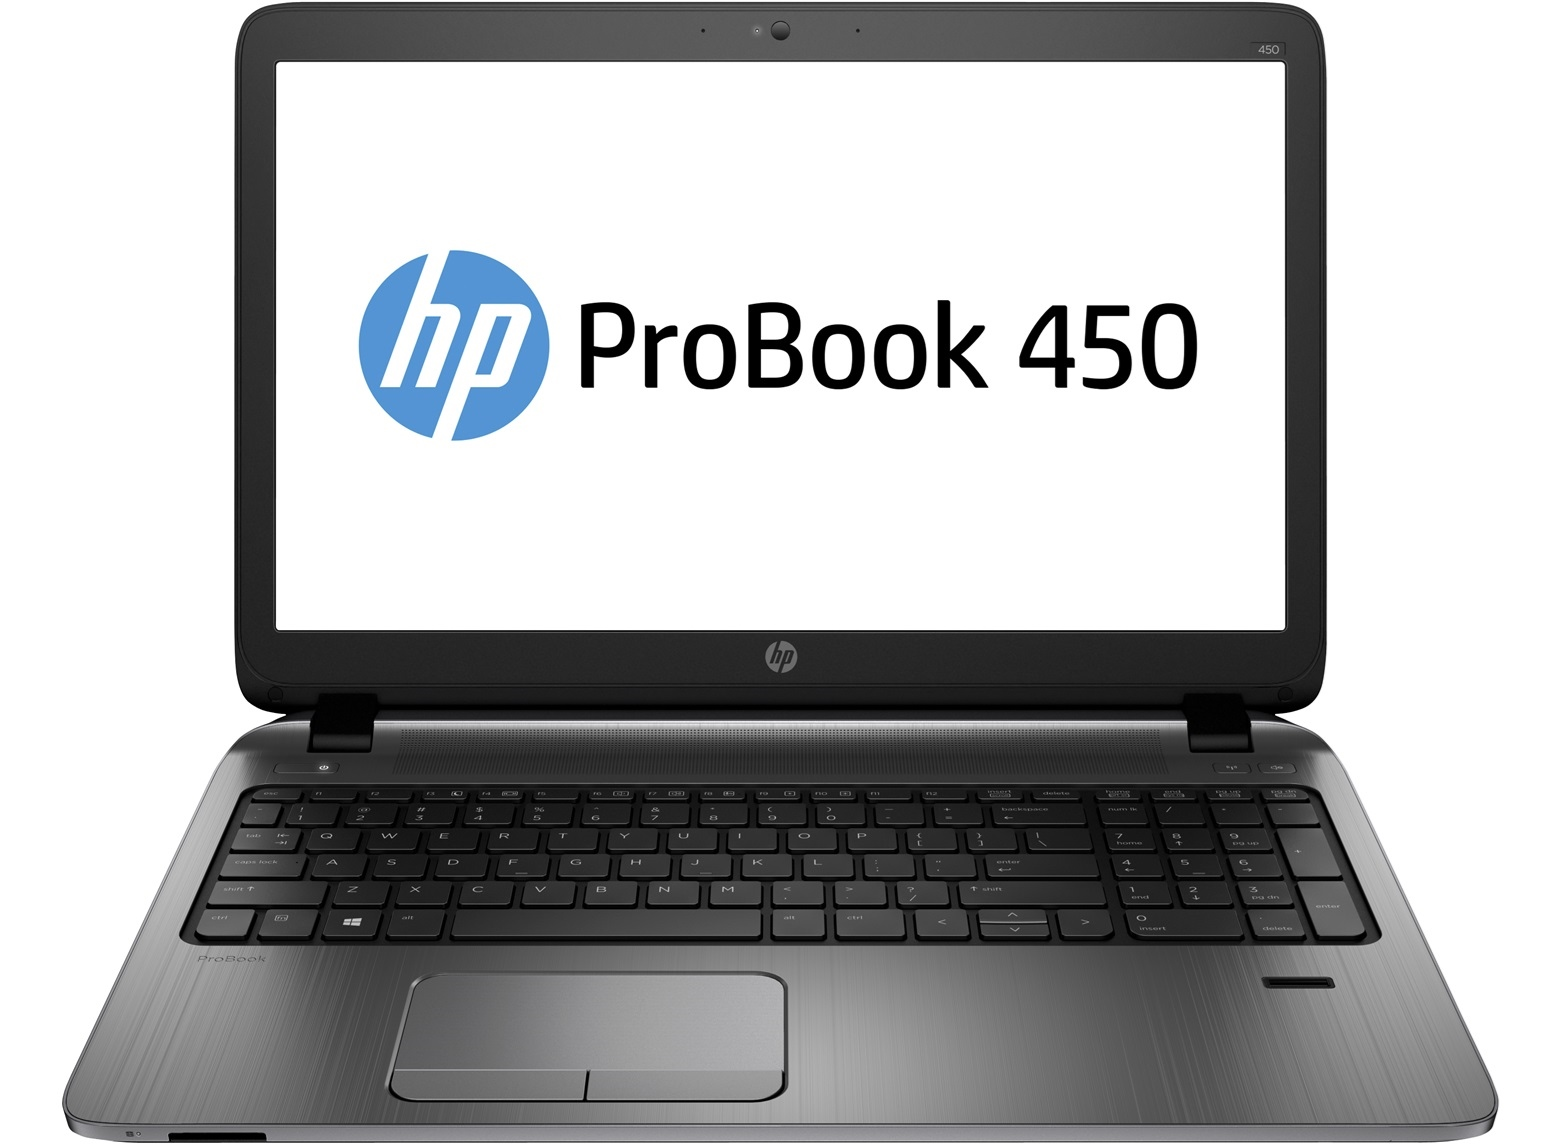 HP ProBook 450 G2 i3-5010U /4GB/1TB/15.6 FHD CAM/Backlid kbd/Win10